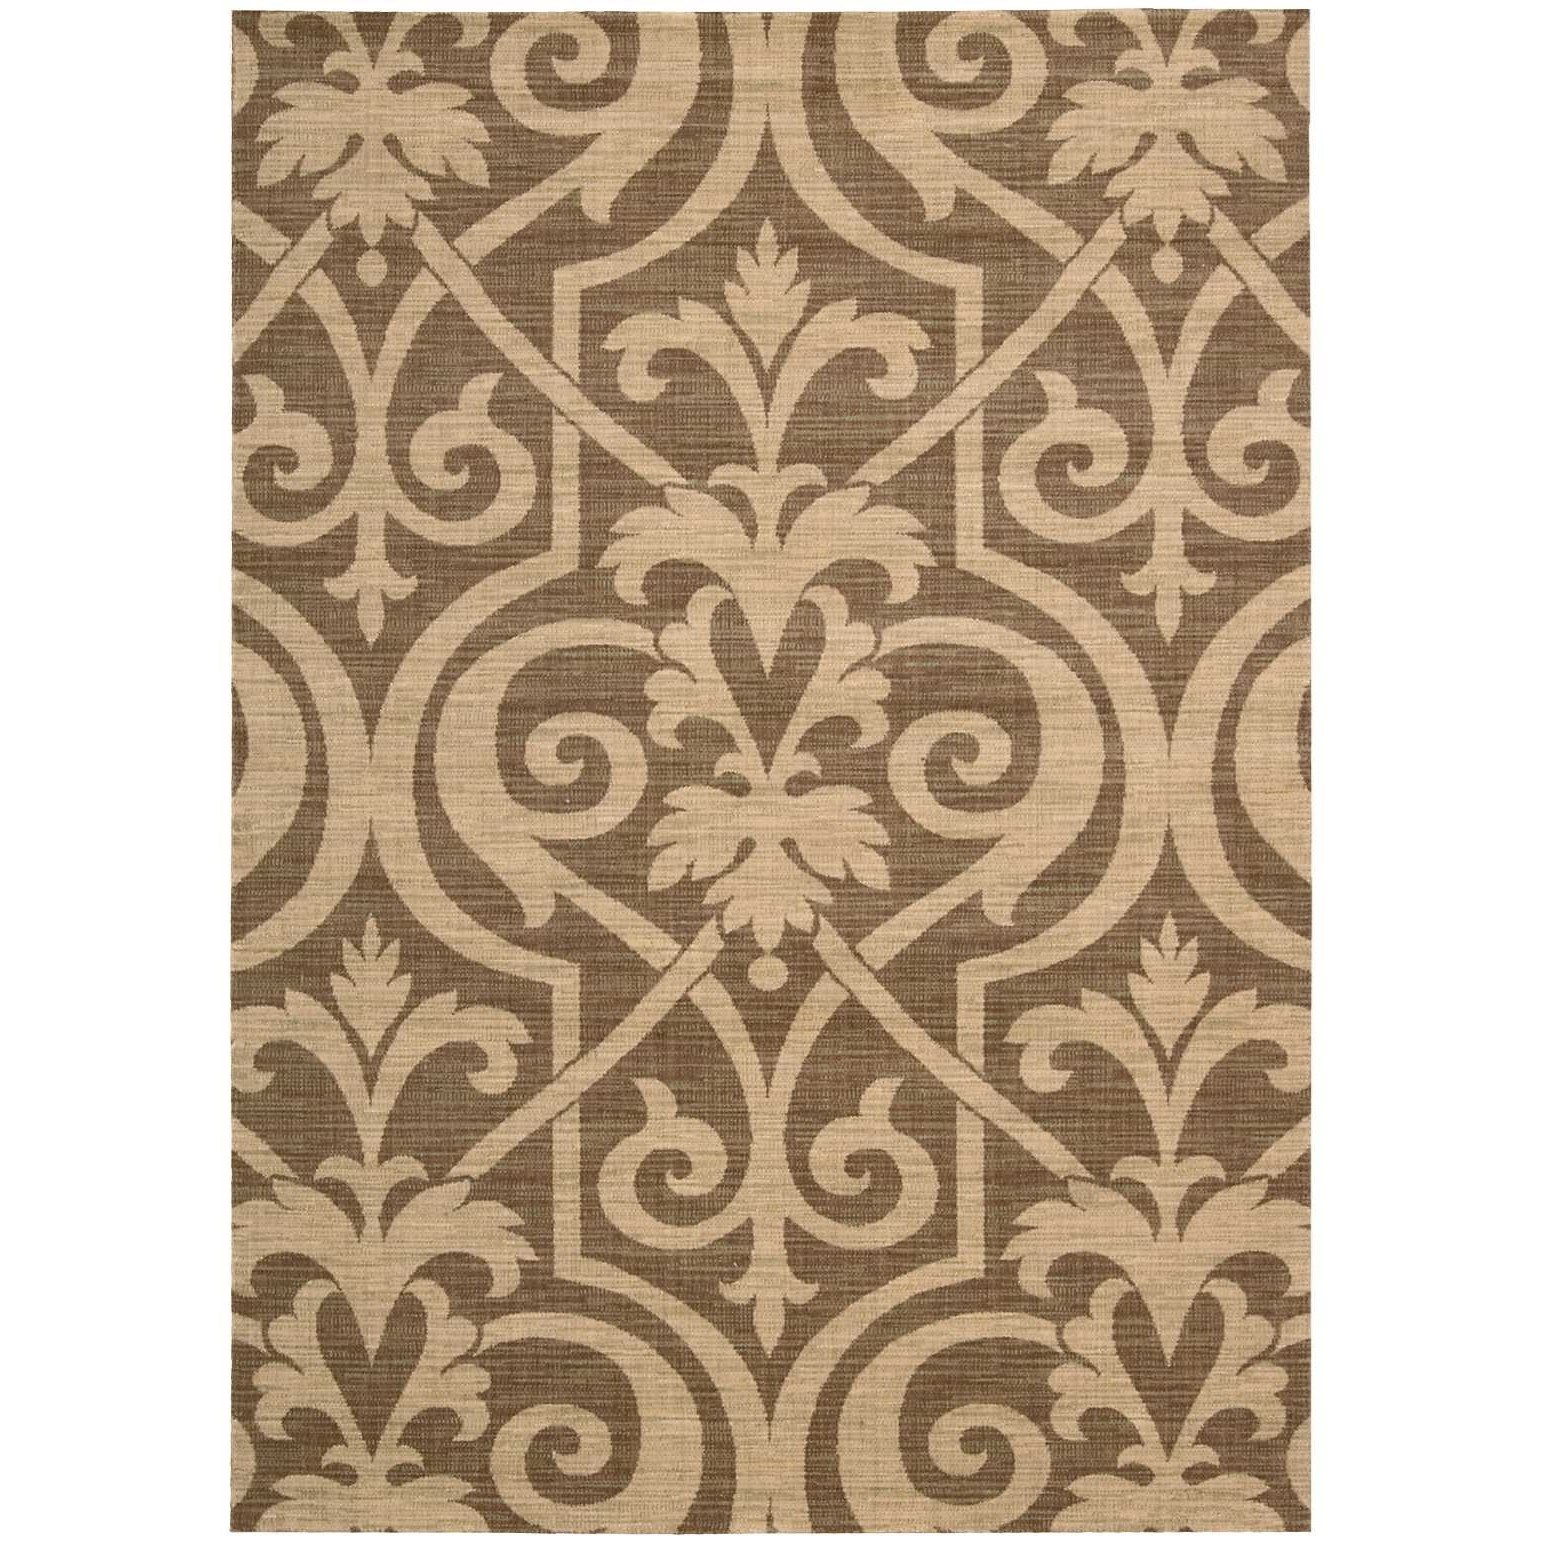 """Riviera 7'9"""" x 10'10"""" Mocha Rectangle Rug by Nourison at Home Collections Furniture"""